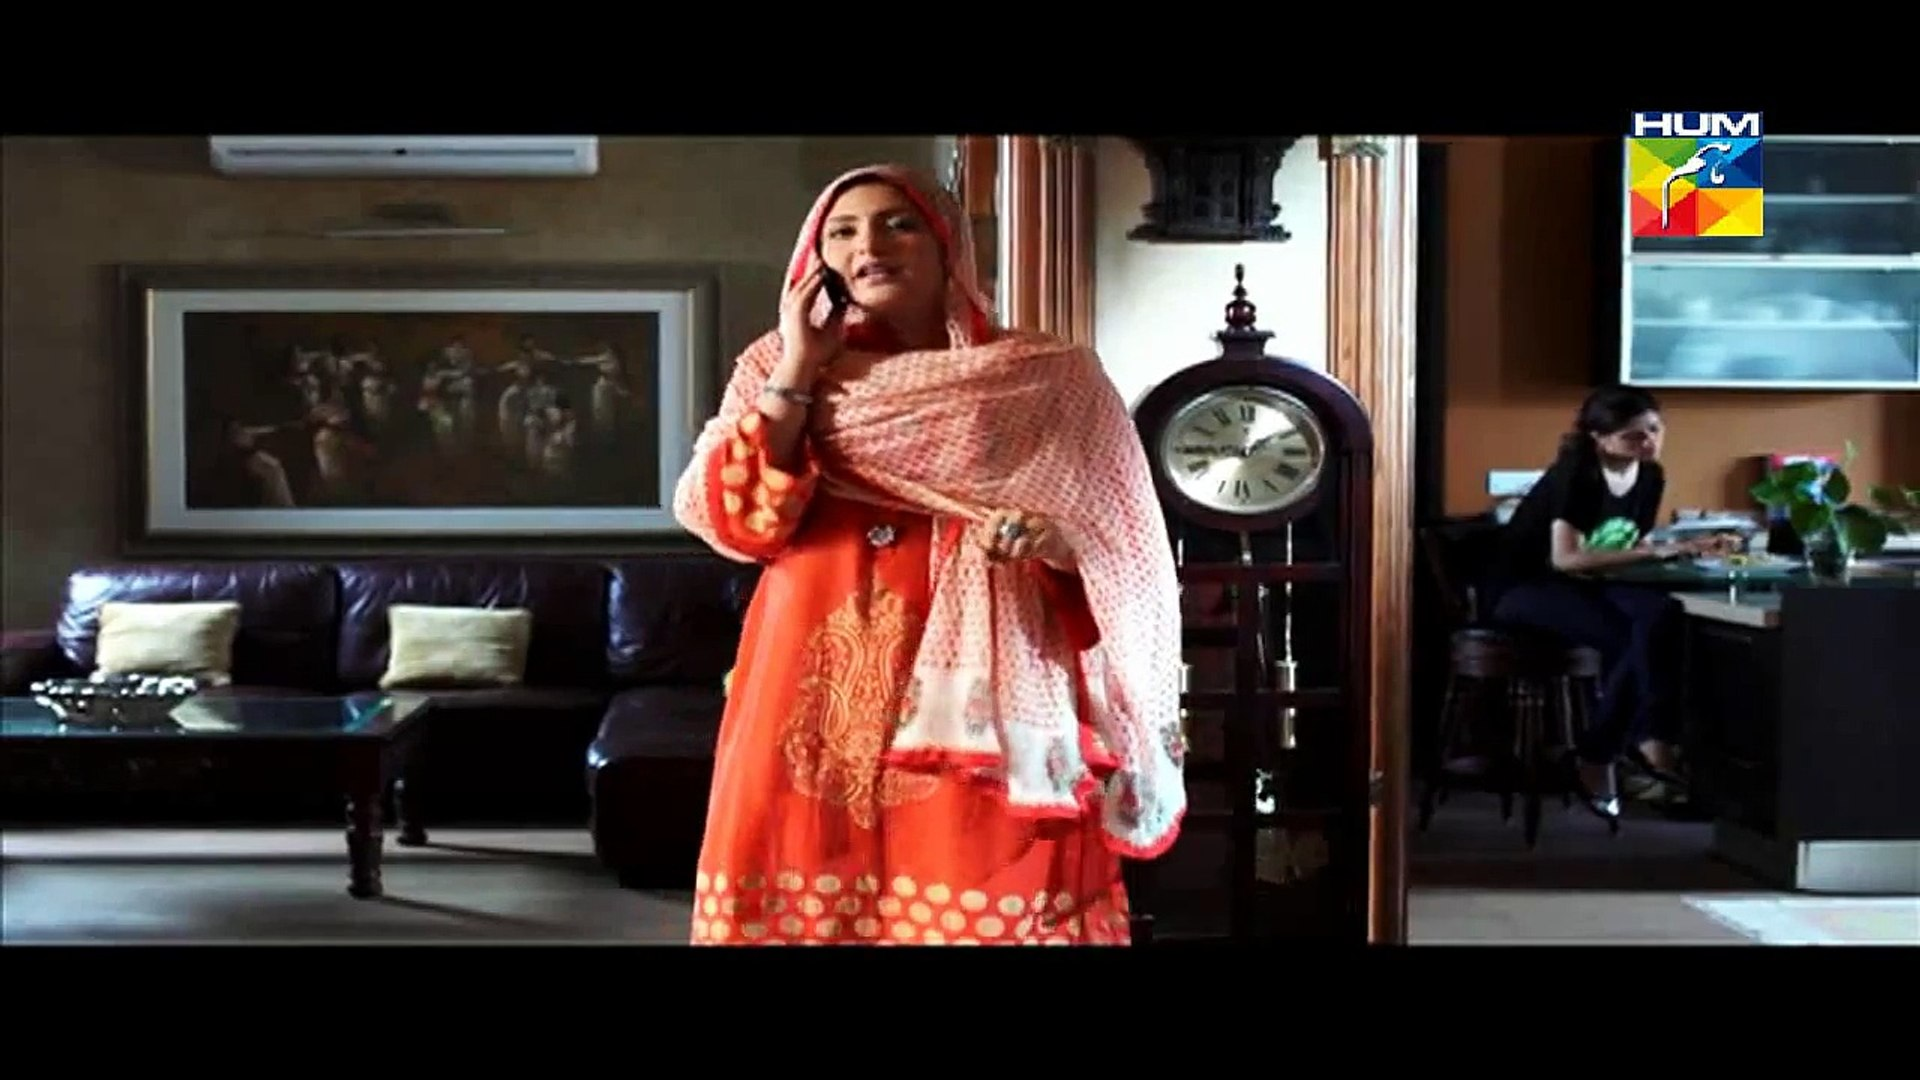 Aik Pal Drama Episode 1 Full On Hum Tv In High Quality 24 November 2014 Video Dailymotion